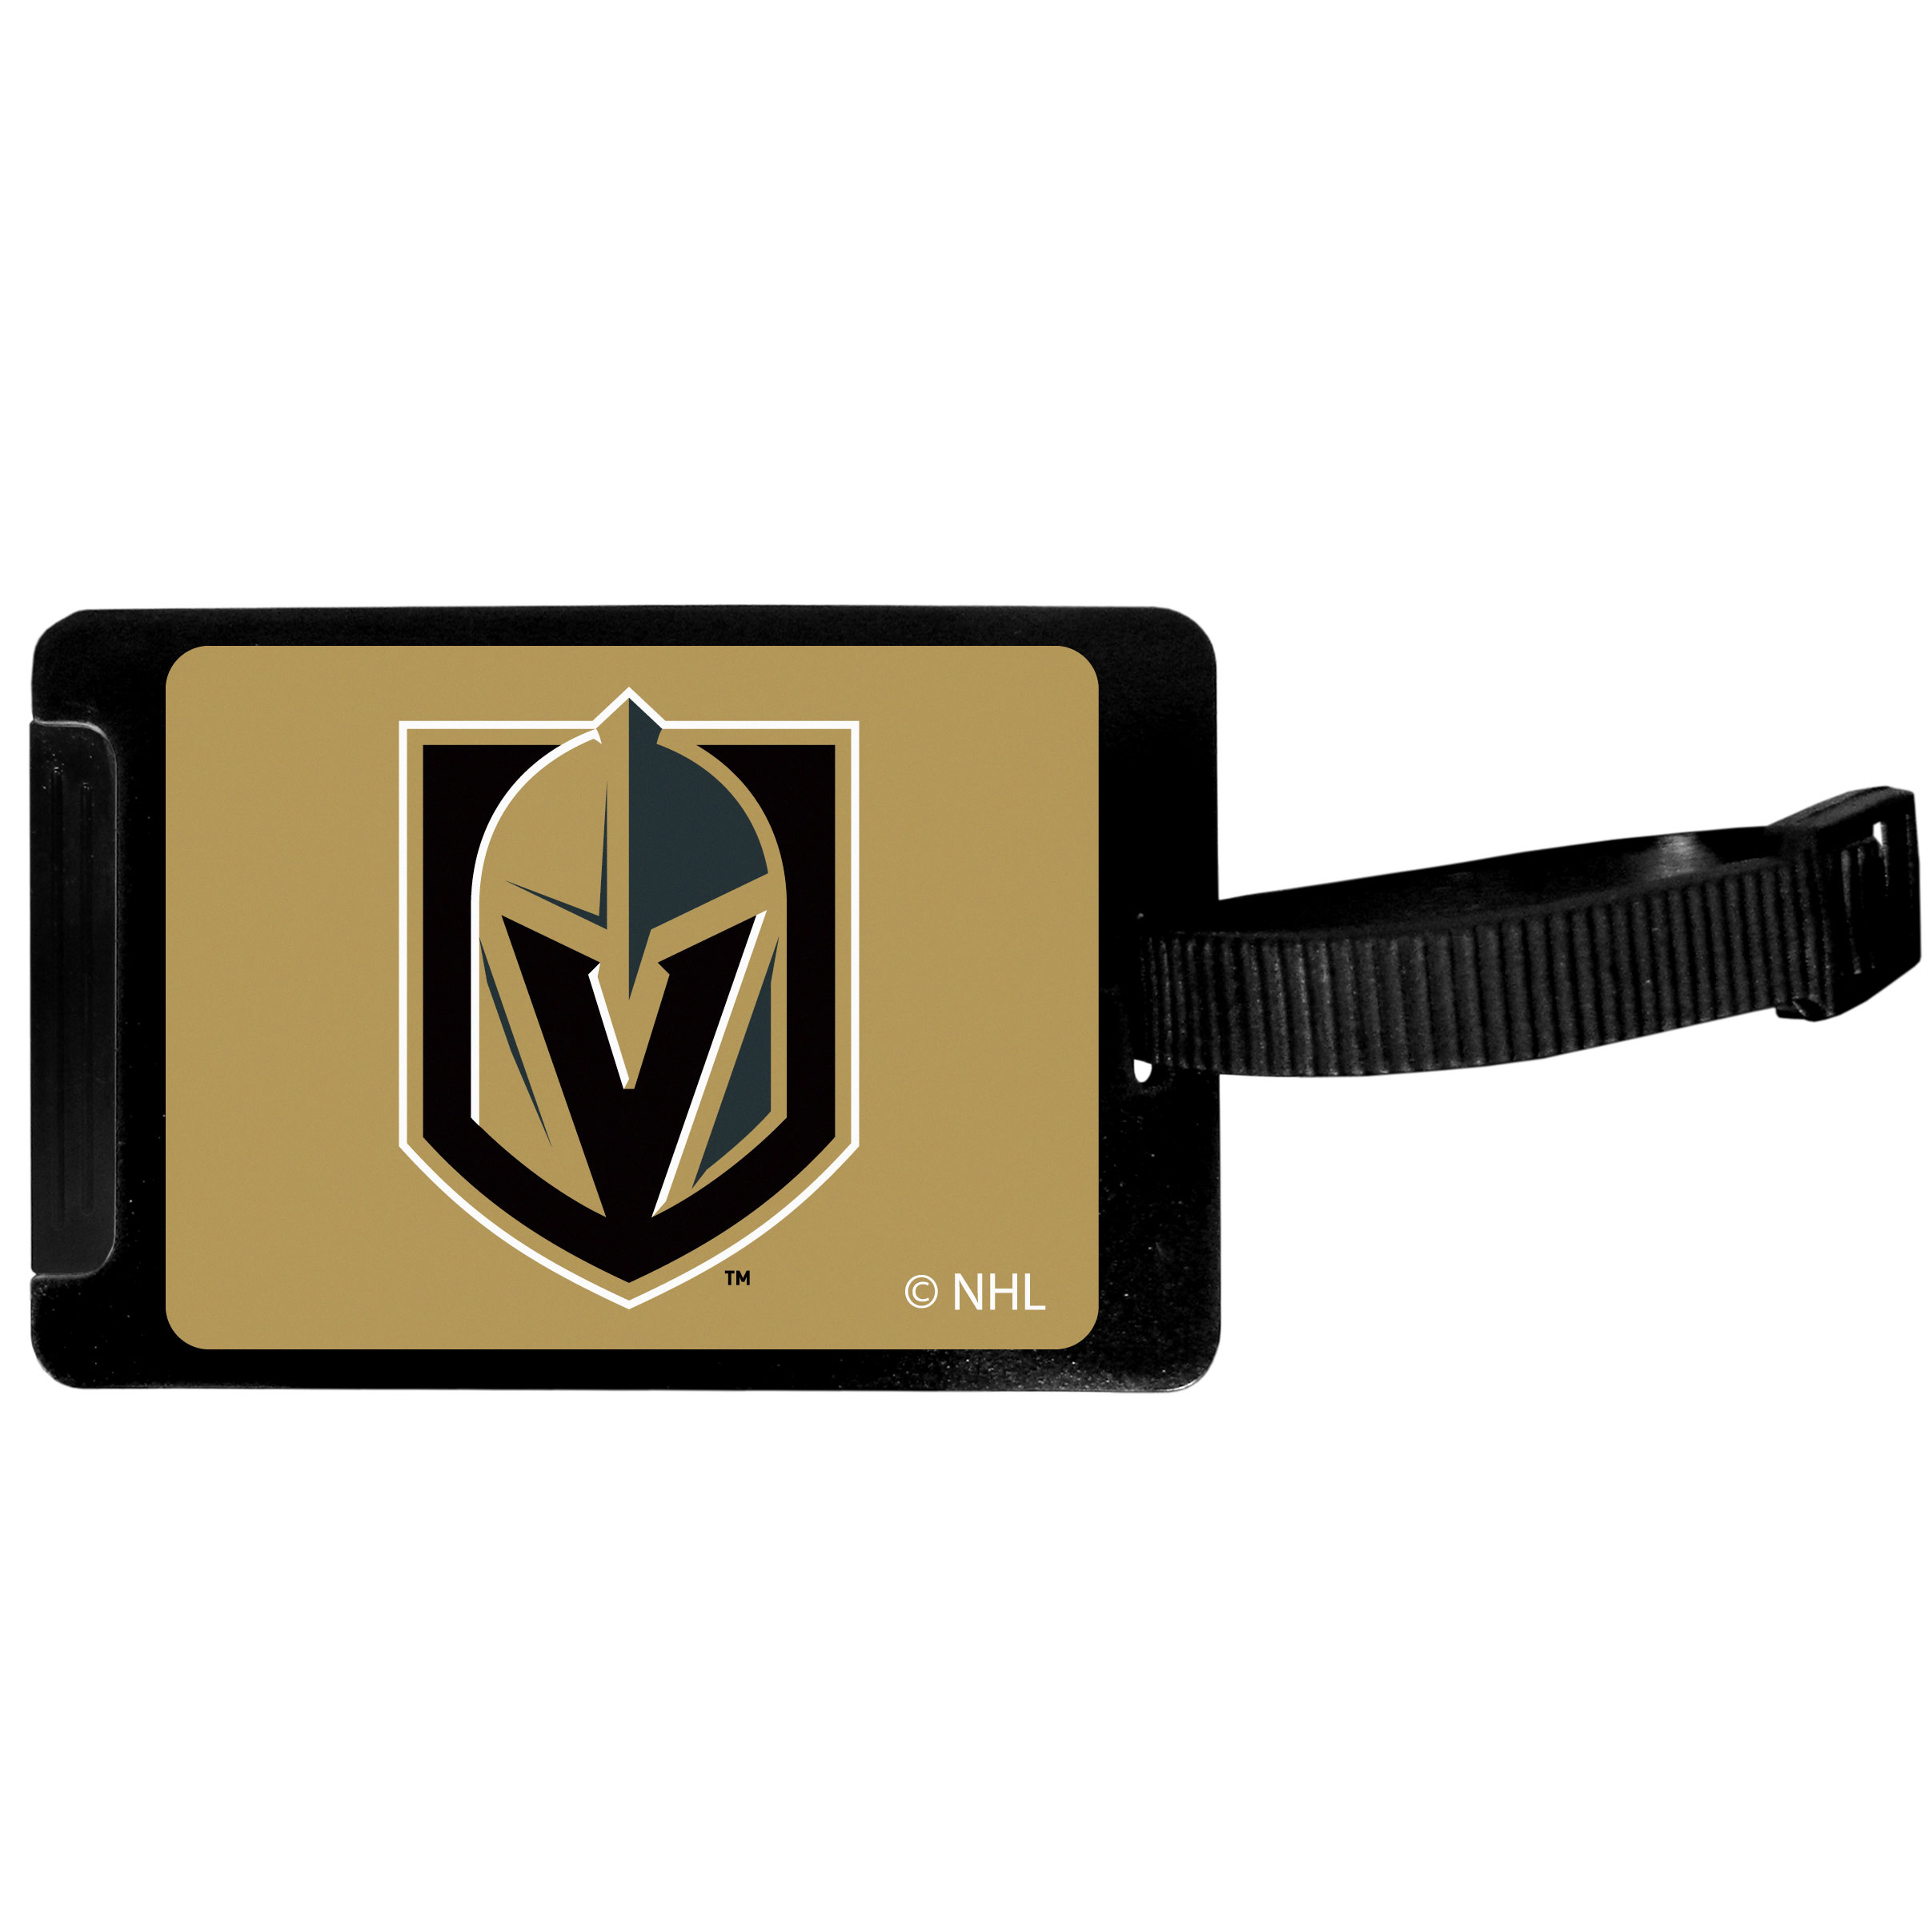 Vegas Golden Knights Luggage Tag - Everyone has had that moment at the airport of trying to find your suitcase among the sea of luggage. This quality luggage tag takes the frustration out of that process by providing an easy to spot tag that is attractive and shows off your team pride. The hard plastic tag has a slide-out address tab and bright digitally printed Vegas Golden Knights logo. This is the perfect travel accessory for the die-hard fan!